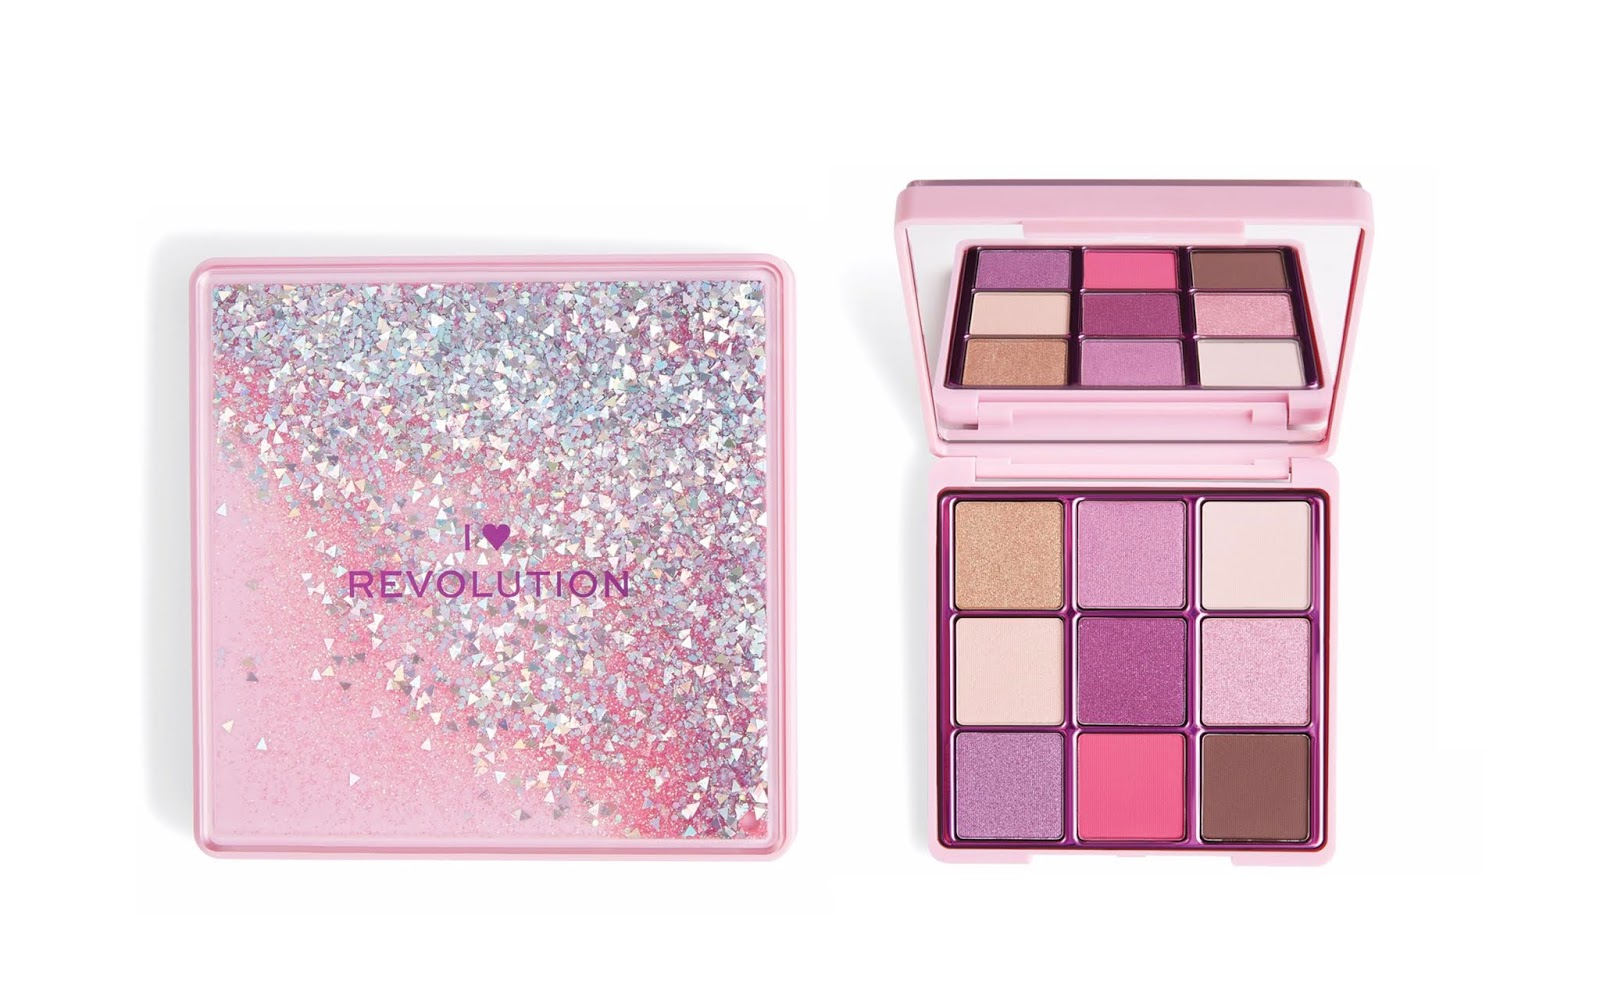 I HEART REVOLUTION , REVOLUTION BEAUTY , I HEART REVOLUTION GLITTER PALETTE,I Heart Revolution One True Love Glitter Palette,I Heart Revolution Fortune Seeker Glitter Palette,I Heart Revolution Starry Eyed Glitter Palette,